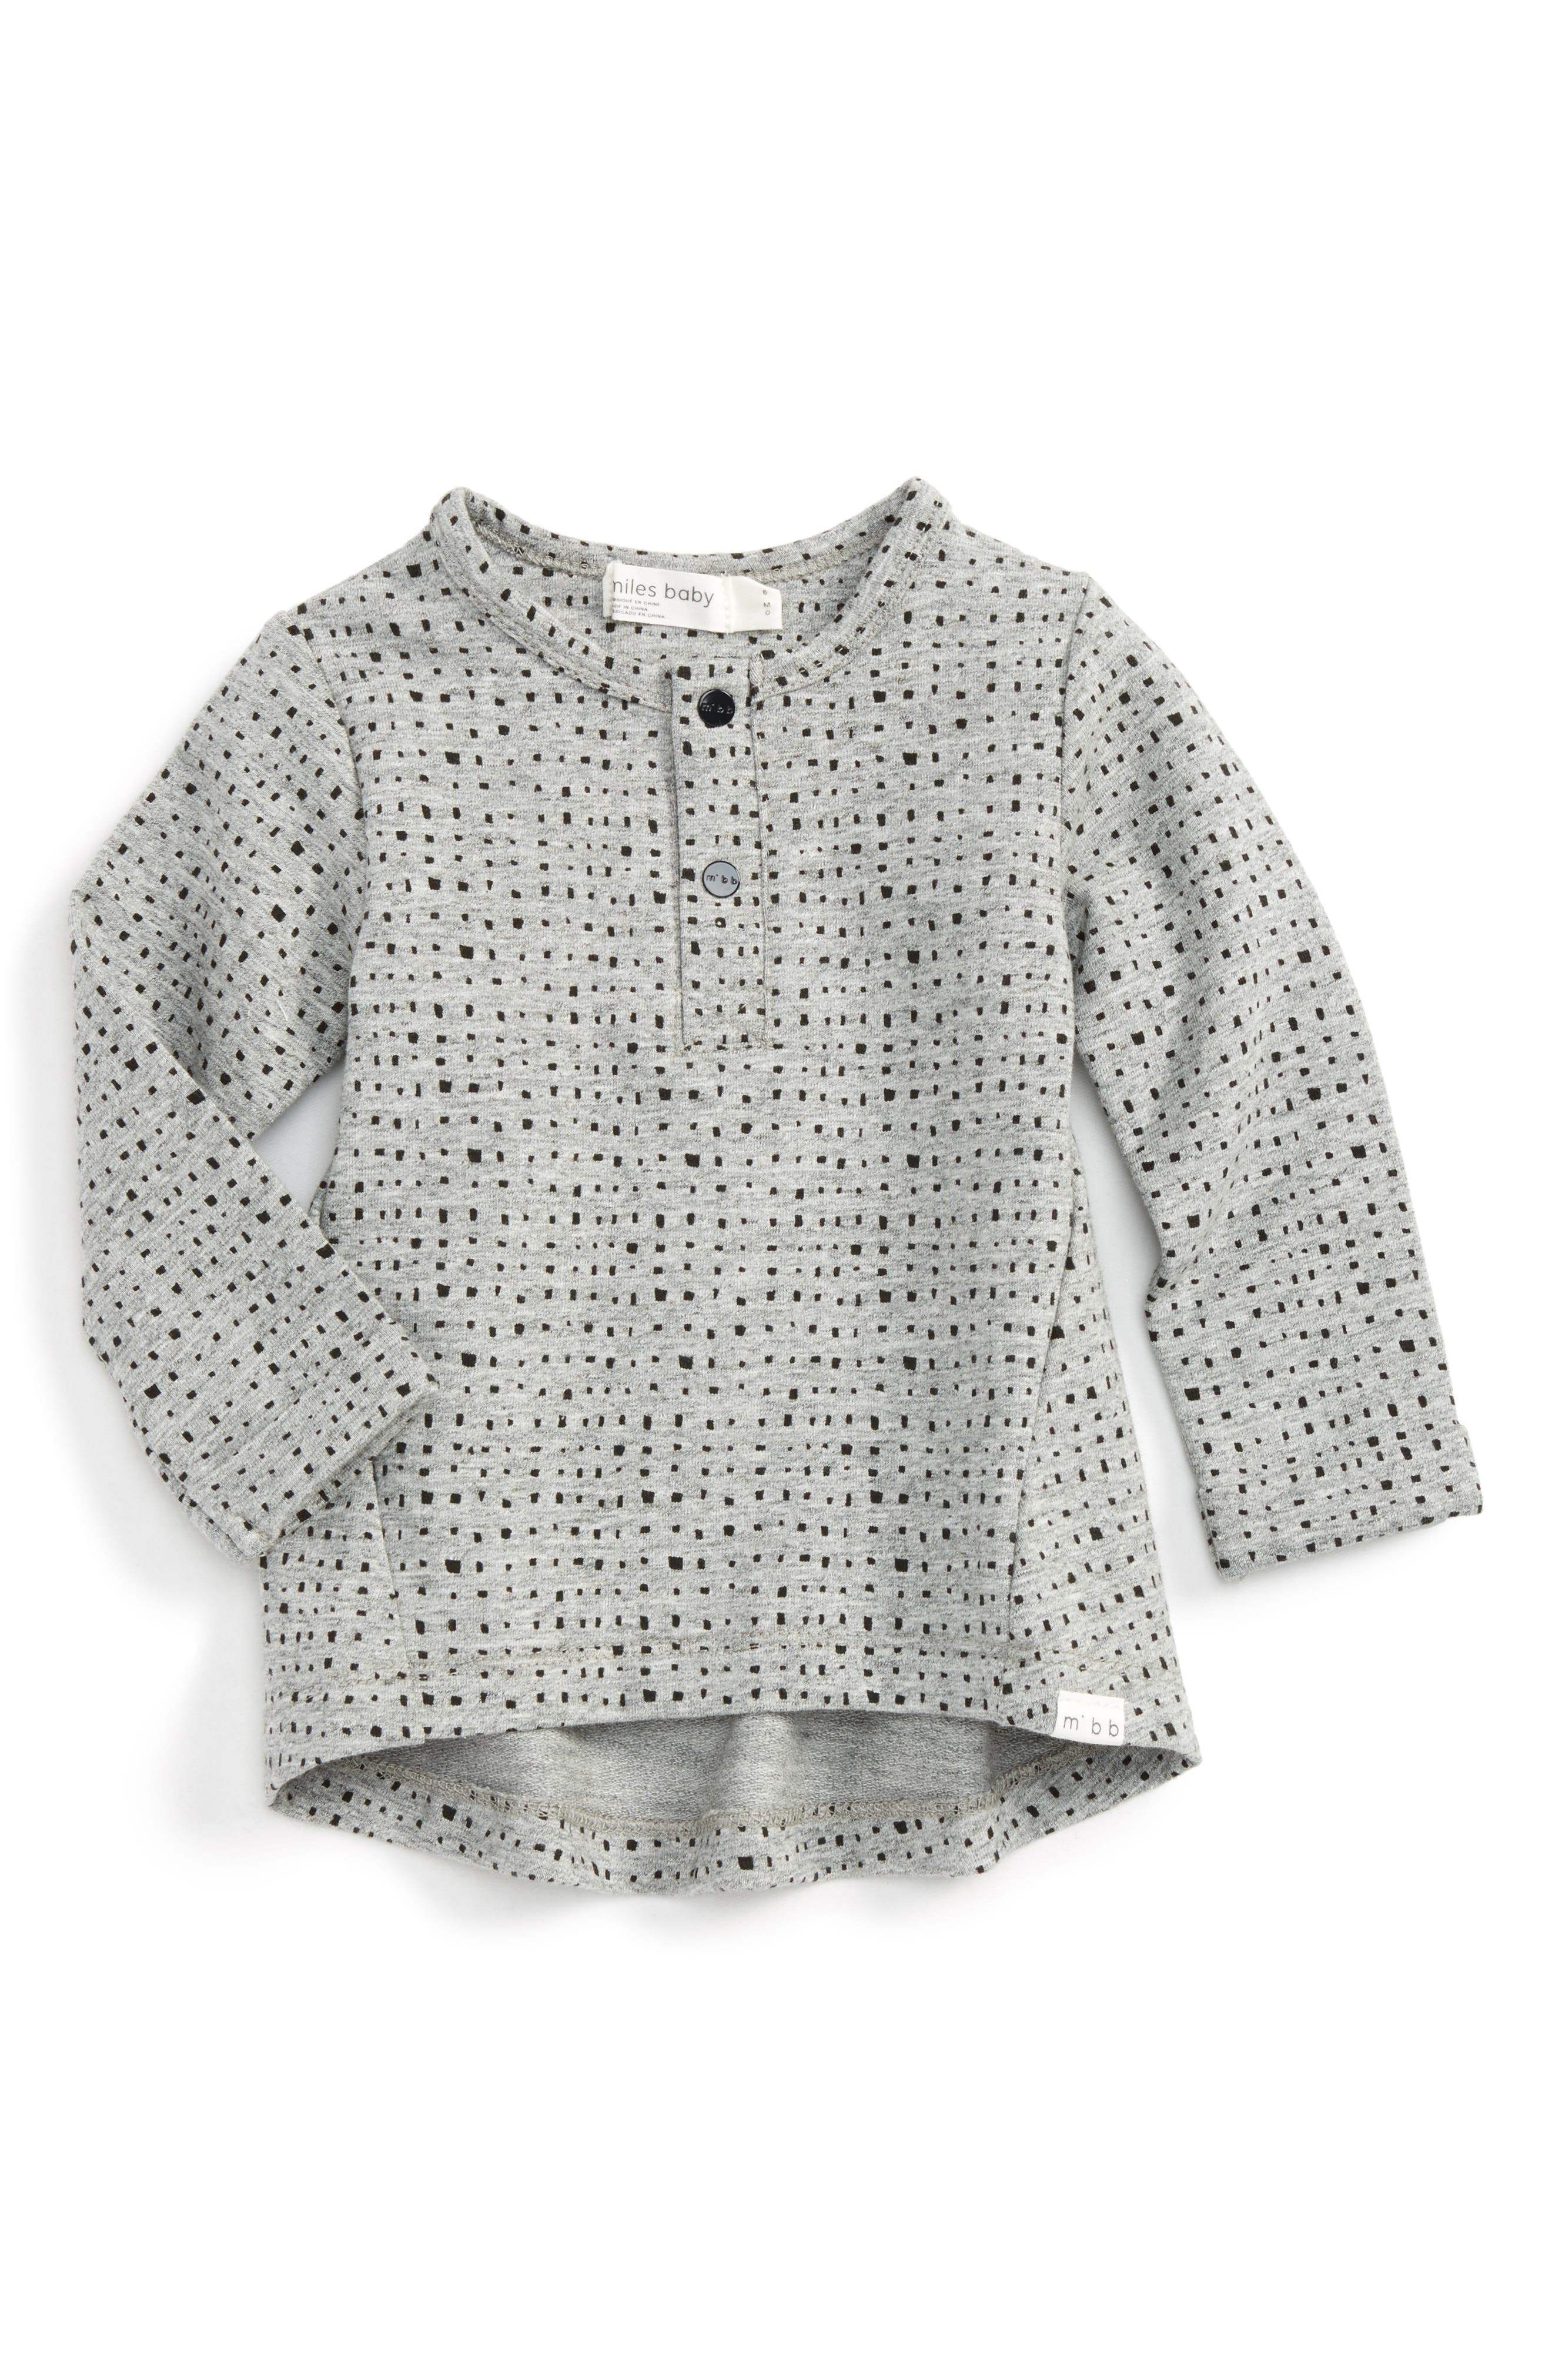 Alternate Image 1 Selected - Miles Baby Knit Tunic (Baby)